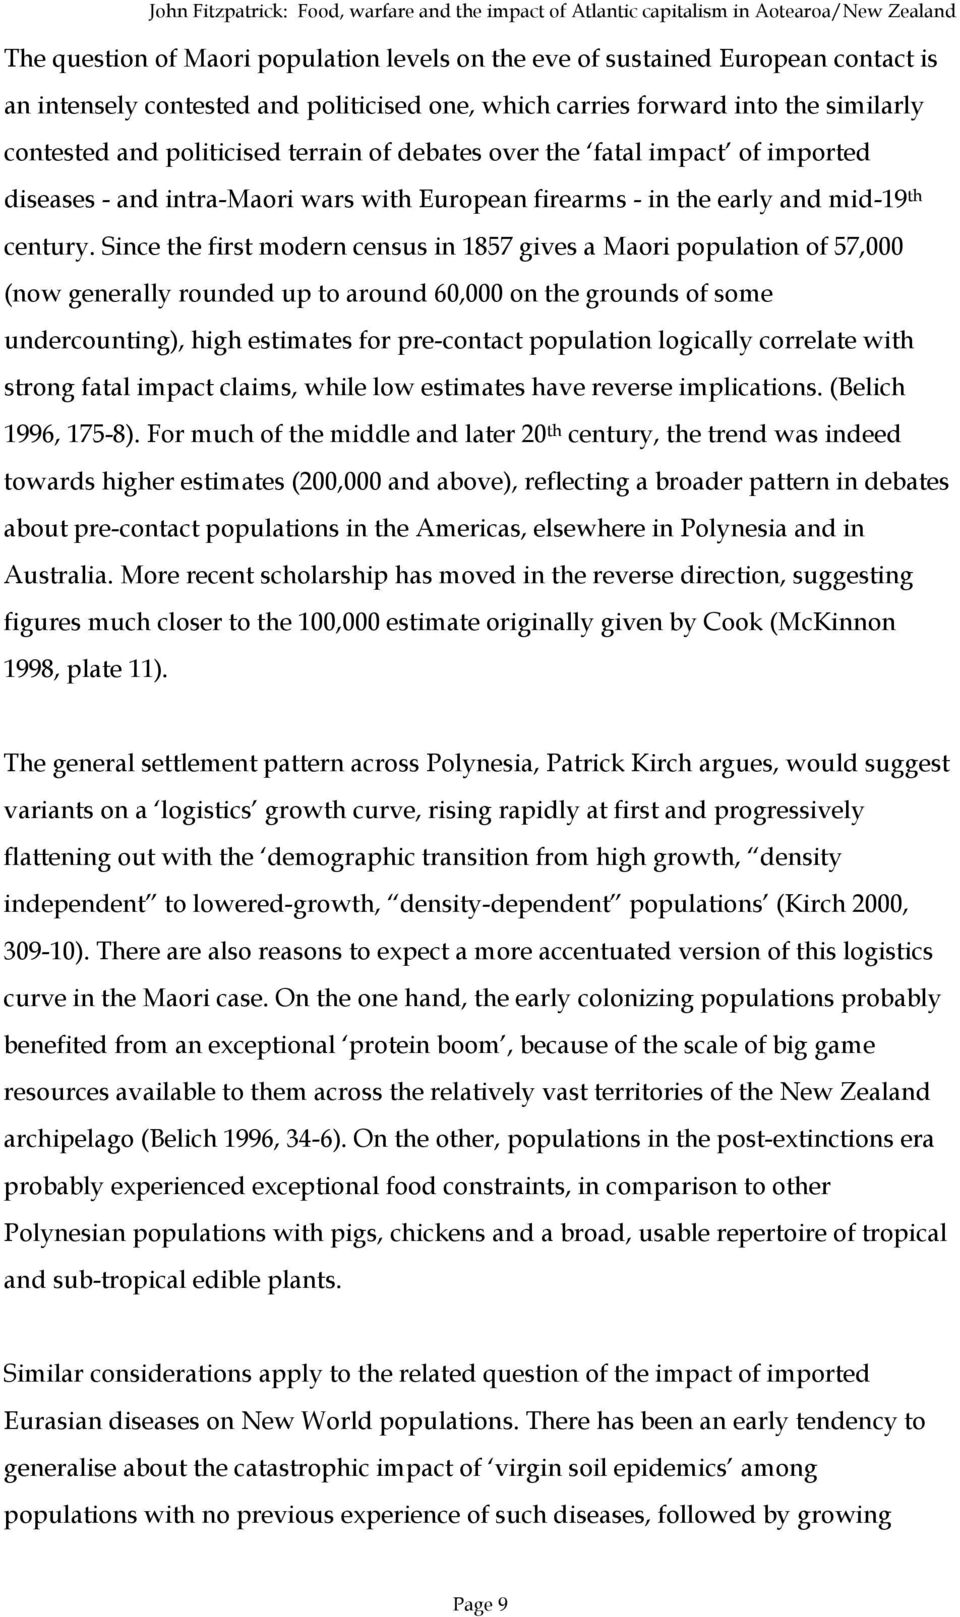 Since the first modern census in 1857 gives a Maori population of 57,000 (now generally rounded up to around 60,000 on the grounds of some undercounting), high estimates for pre-contact population